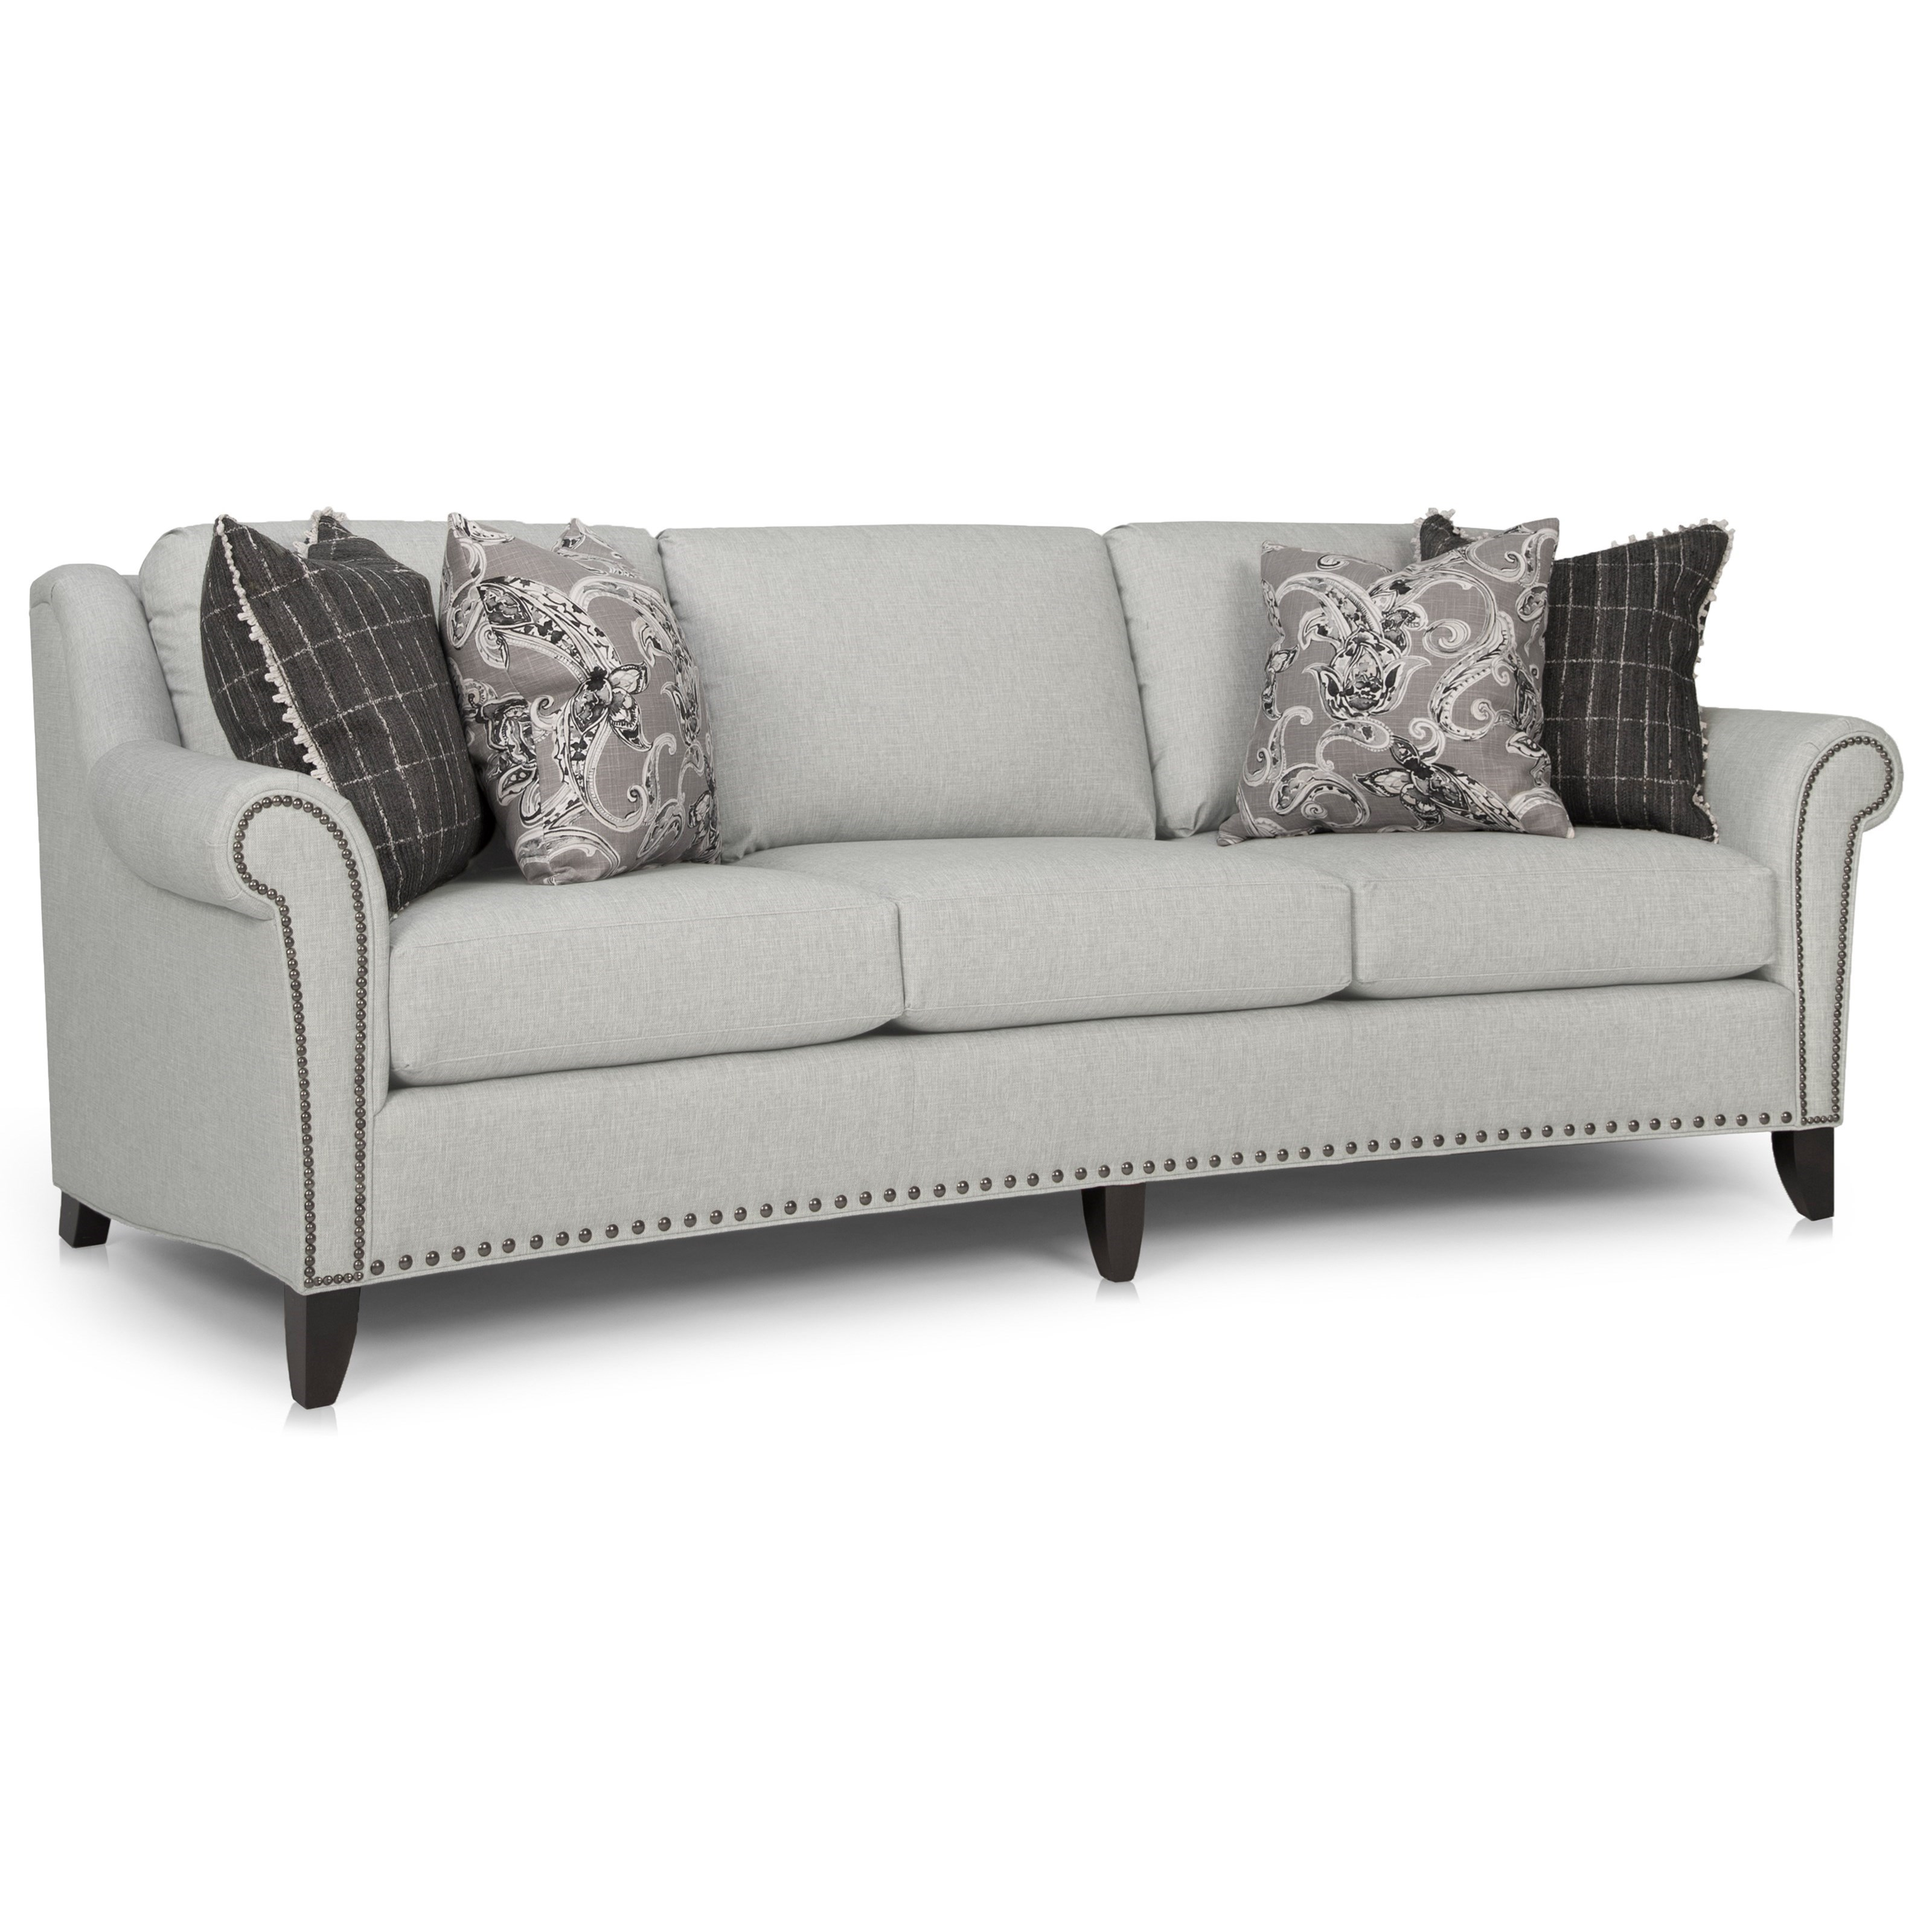 249 Large Sofa by Smith Brothers at Rooms for Less